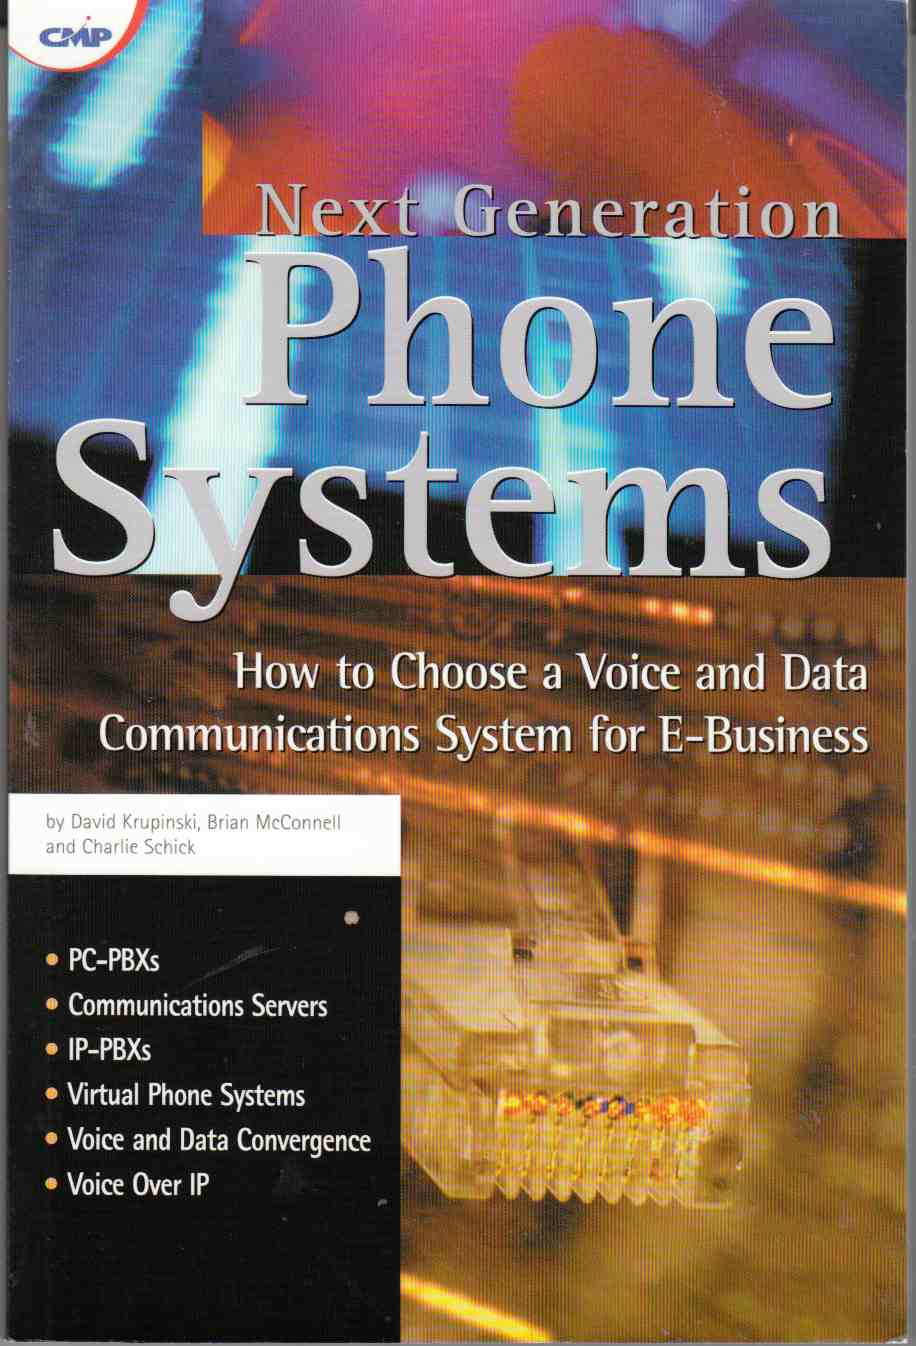 Image for Next Generation Phone Systems How to Choose a Voice and Data Communications System for e-Business